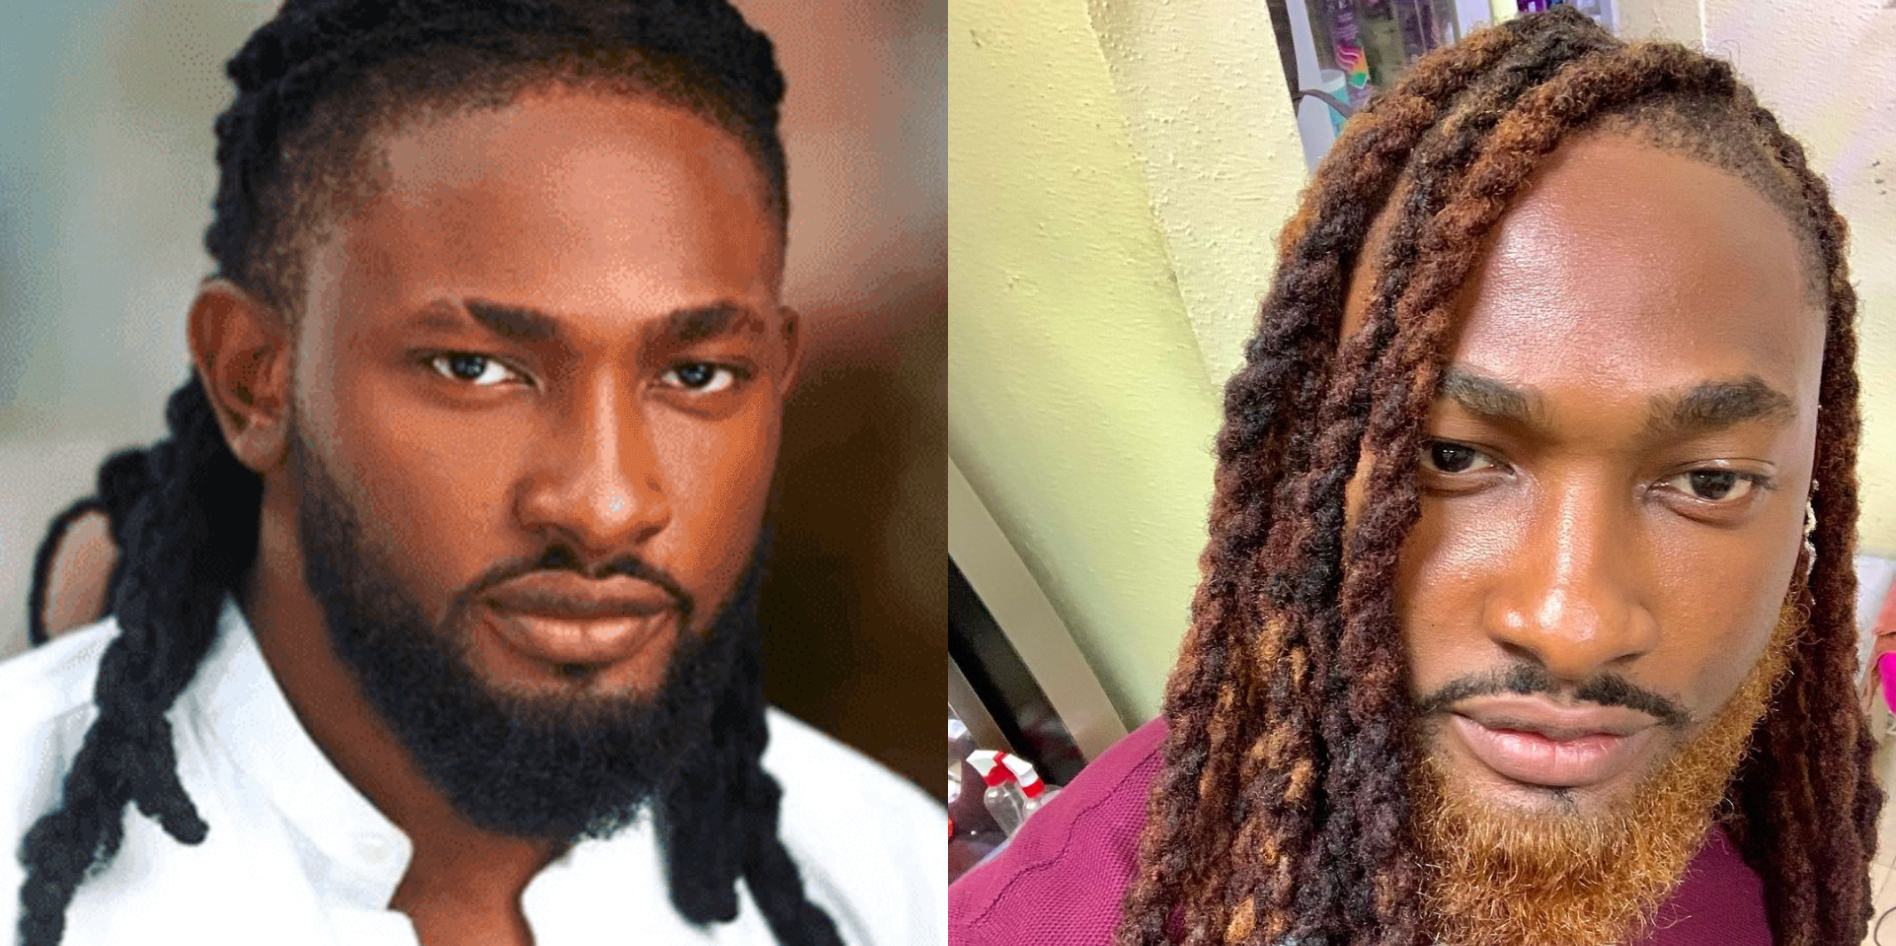 Big Brother Africa Winner Uti Nwachukwu Changes His Look, Dyes Beard Gold